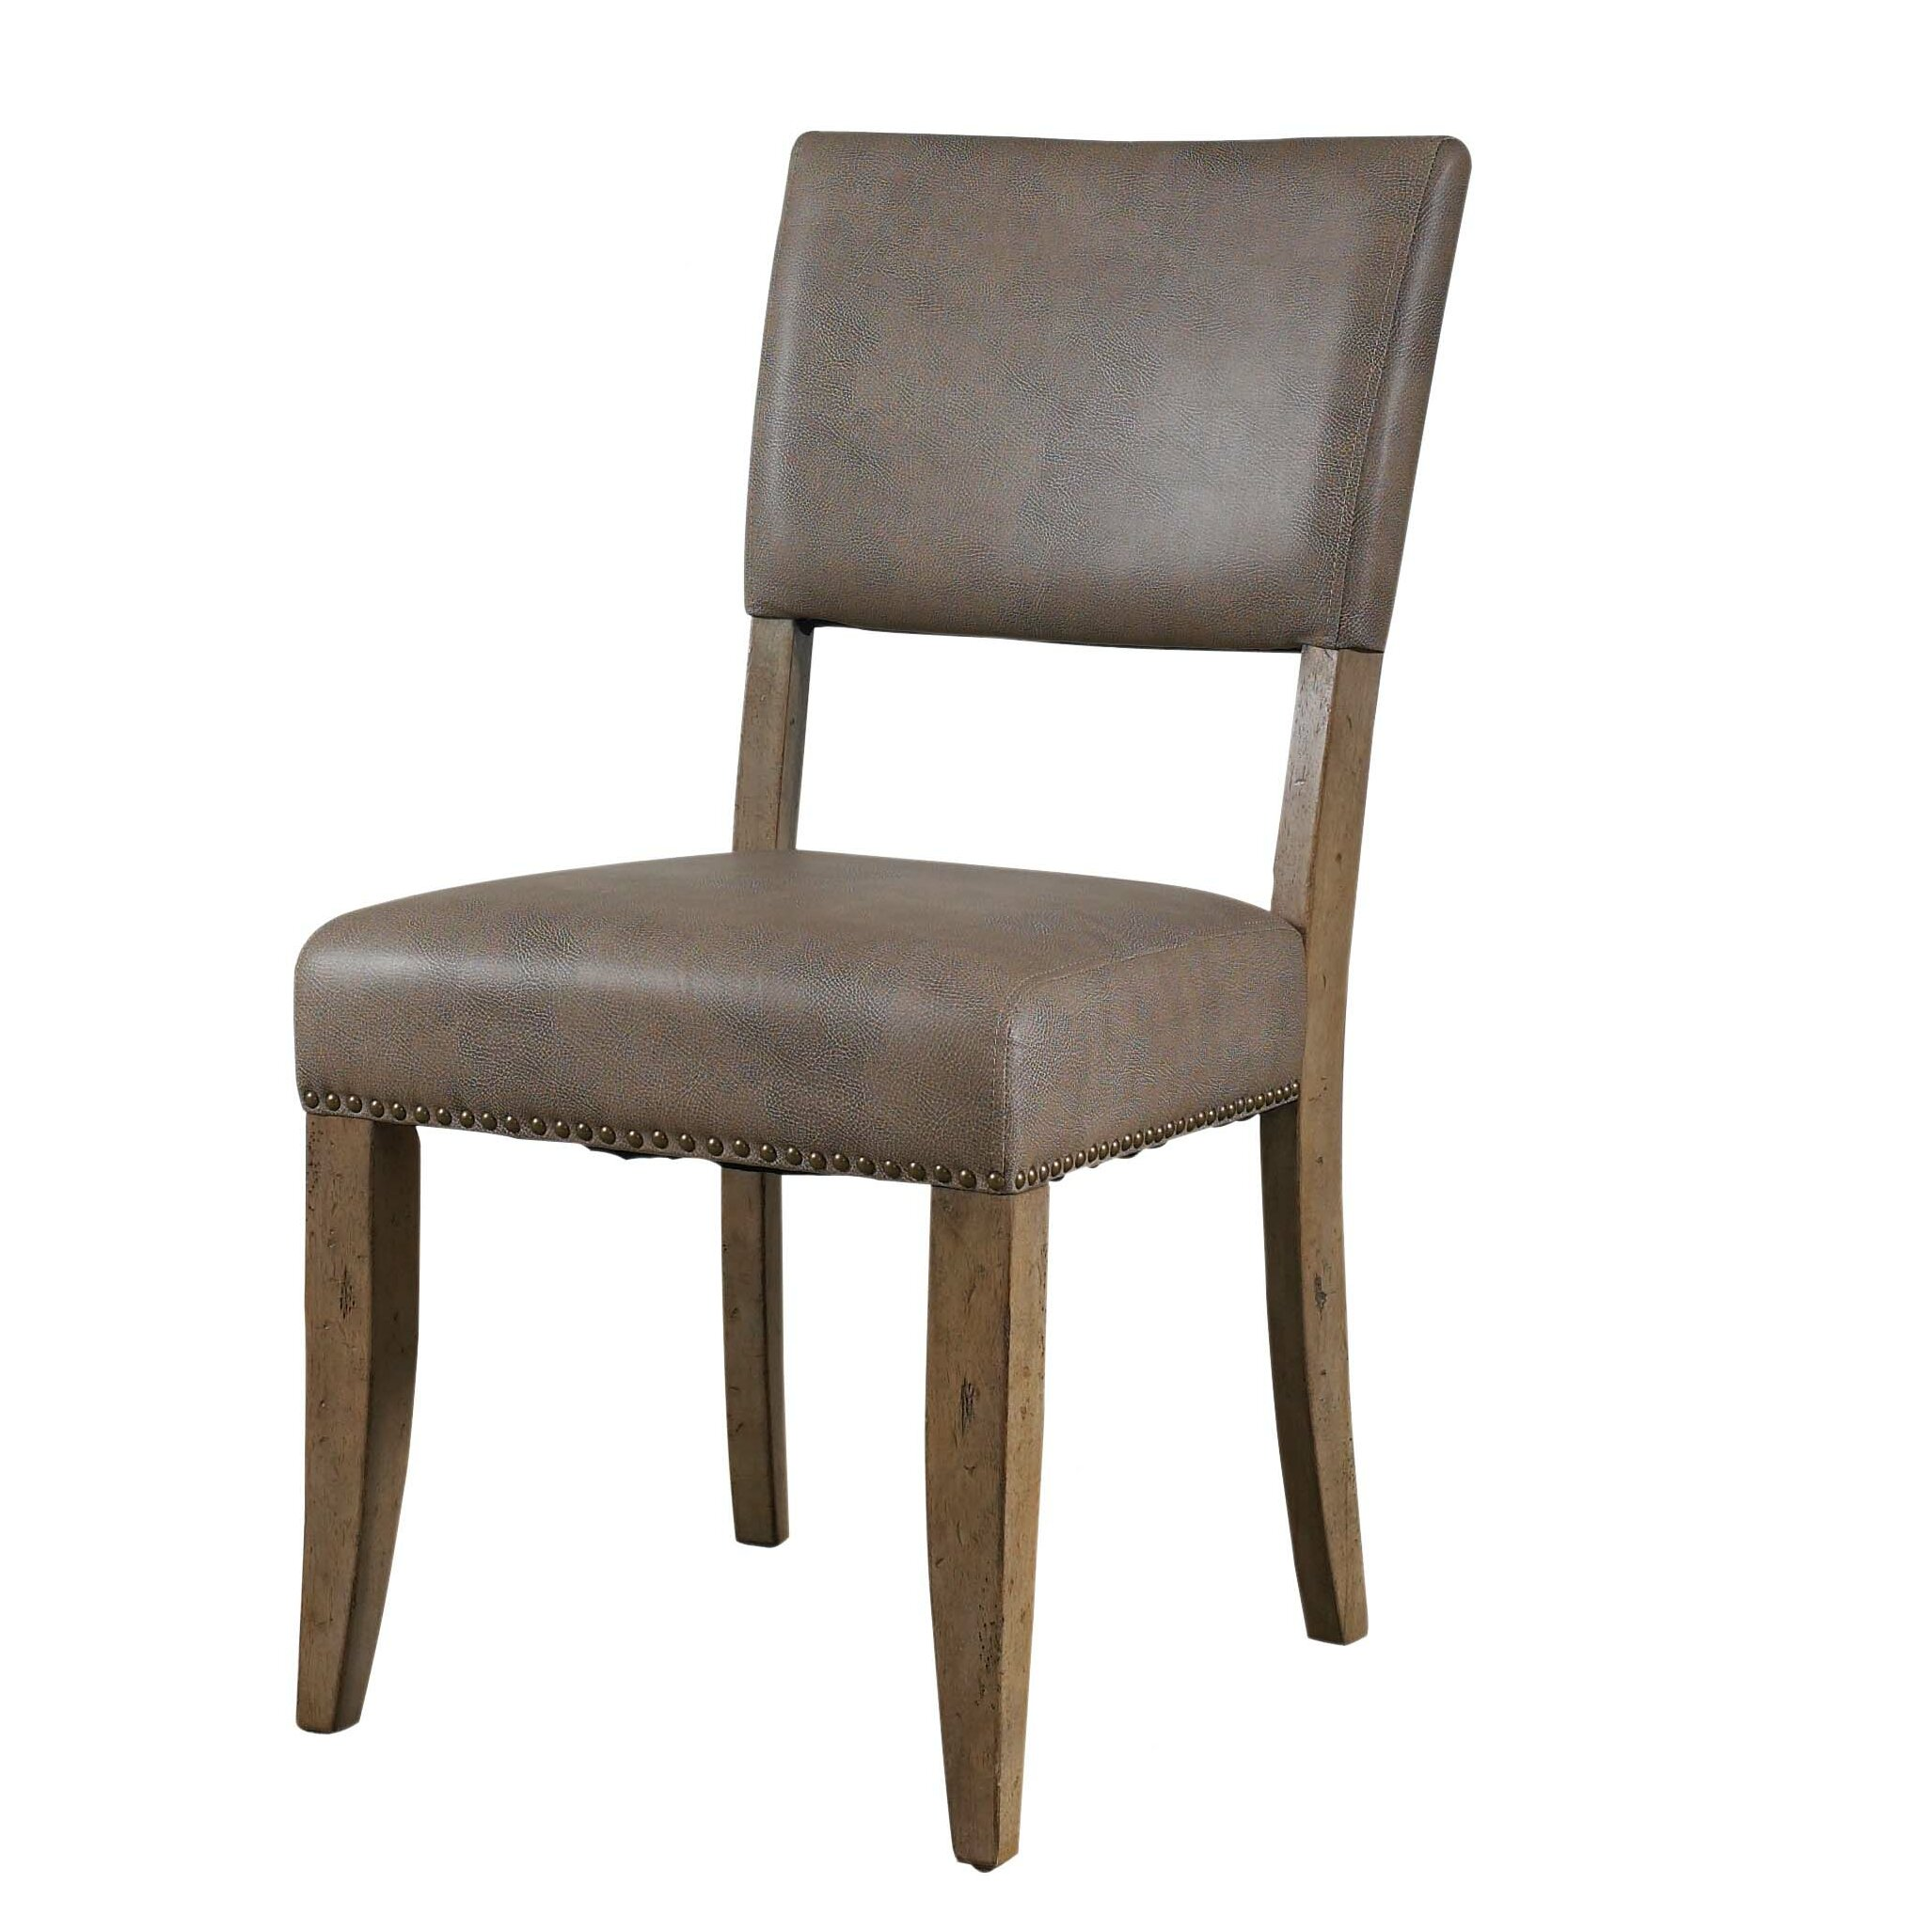 Hillsdale charleston side chair reviews wayfair for Furniture courier